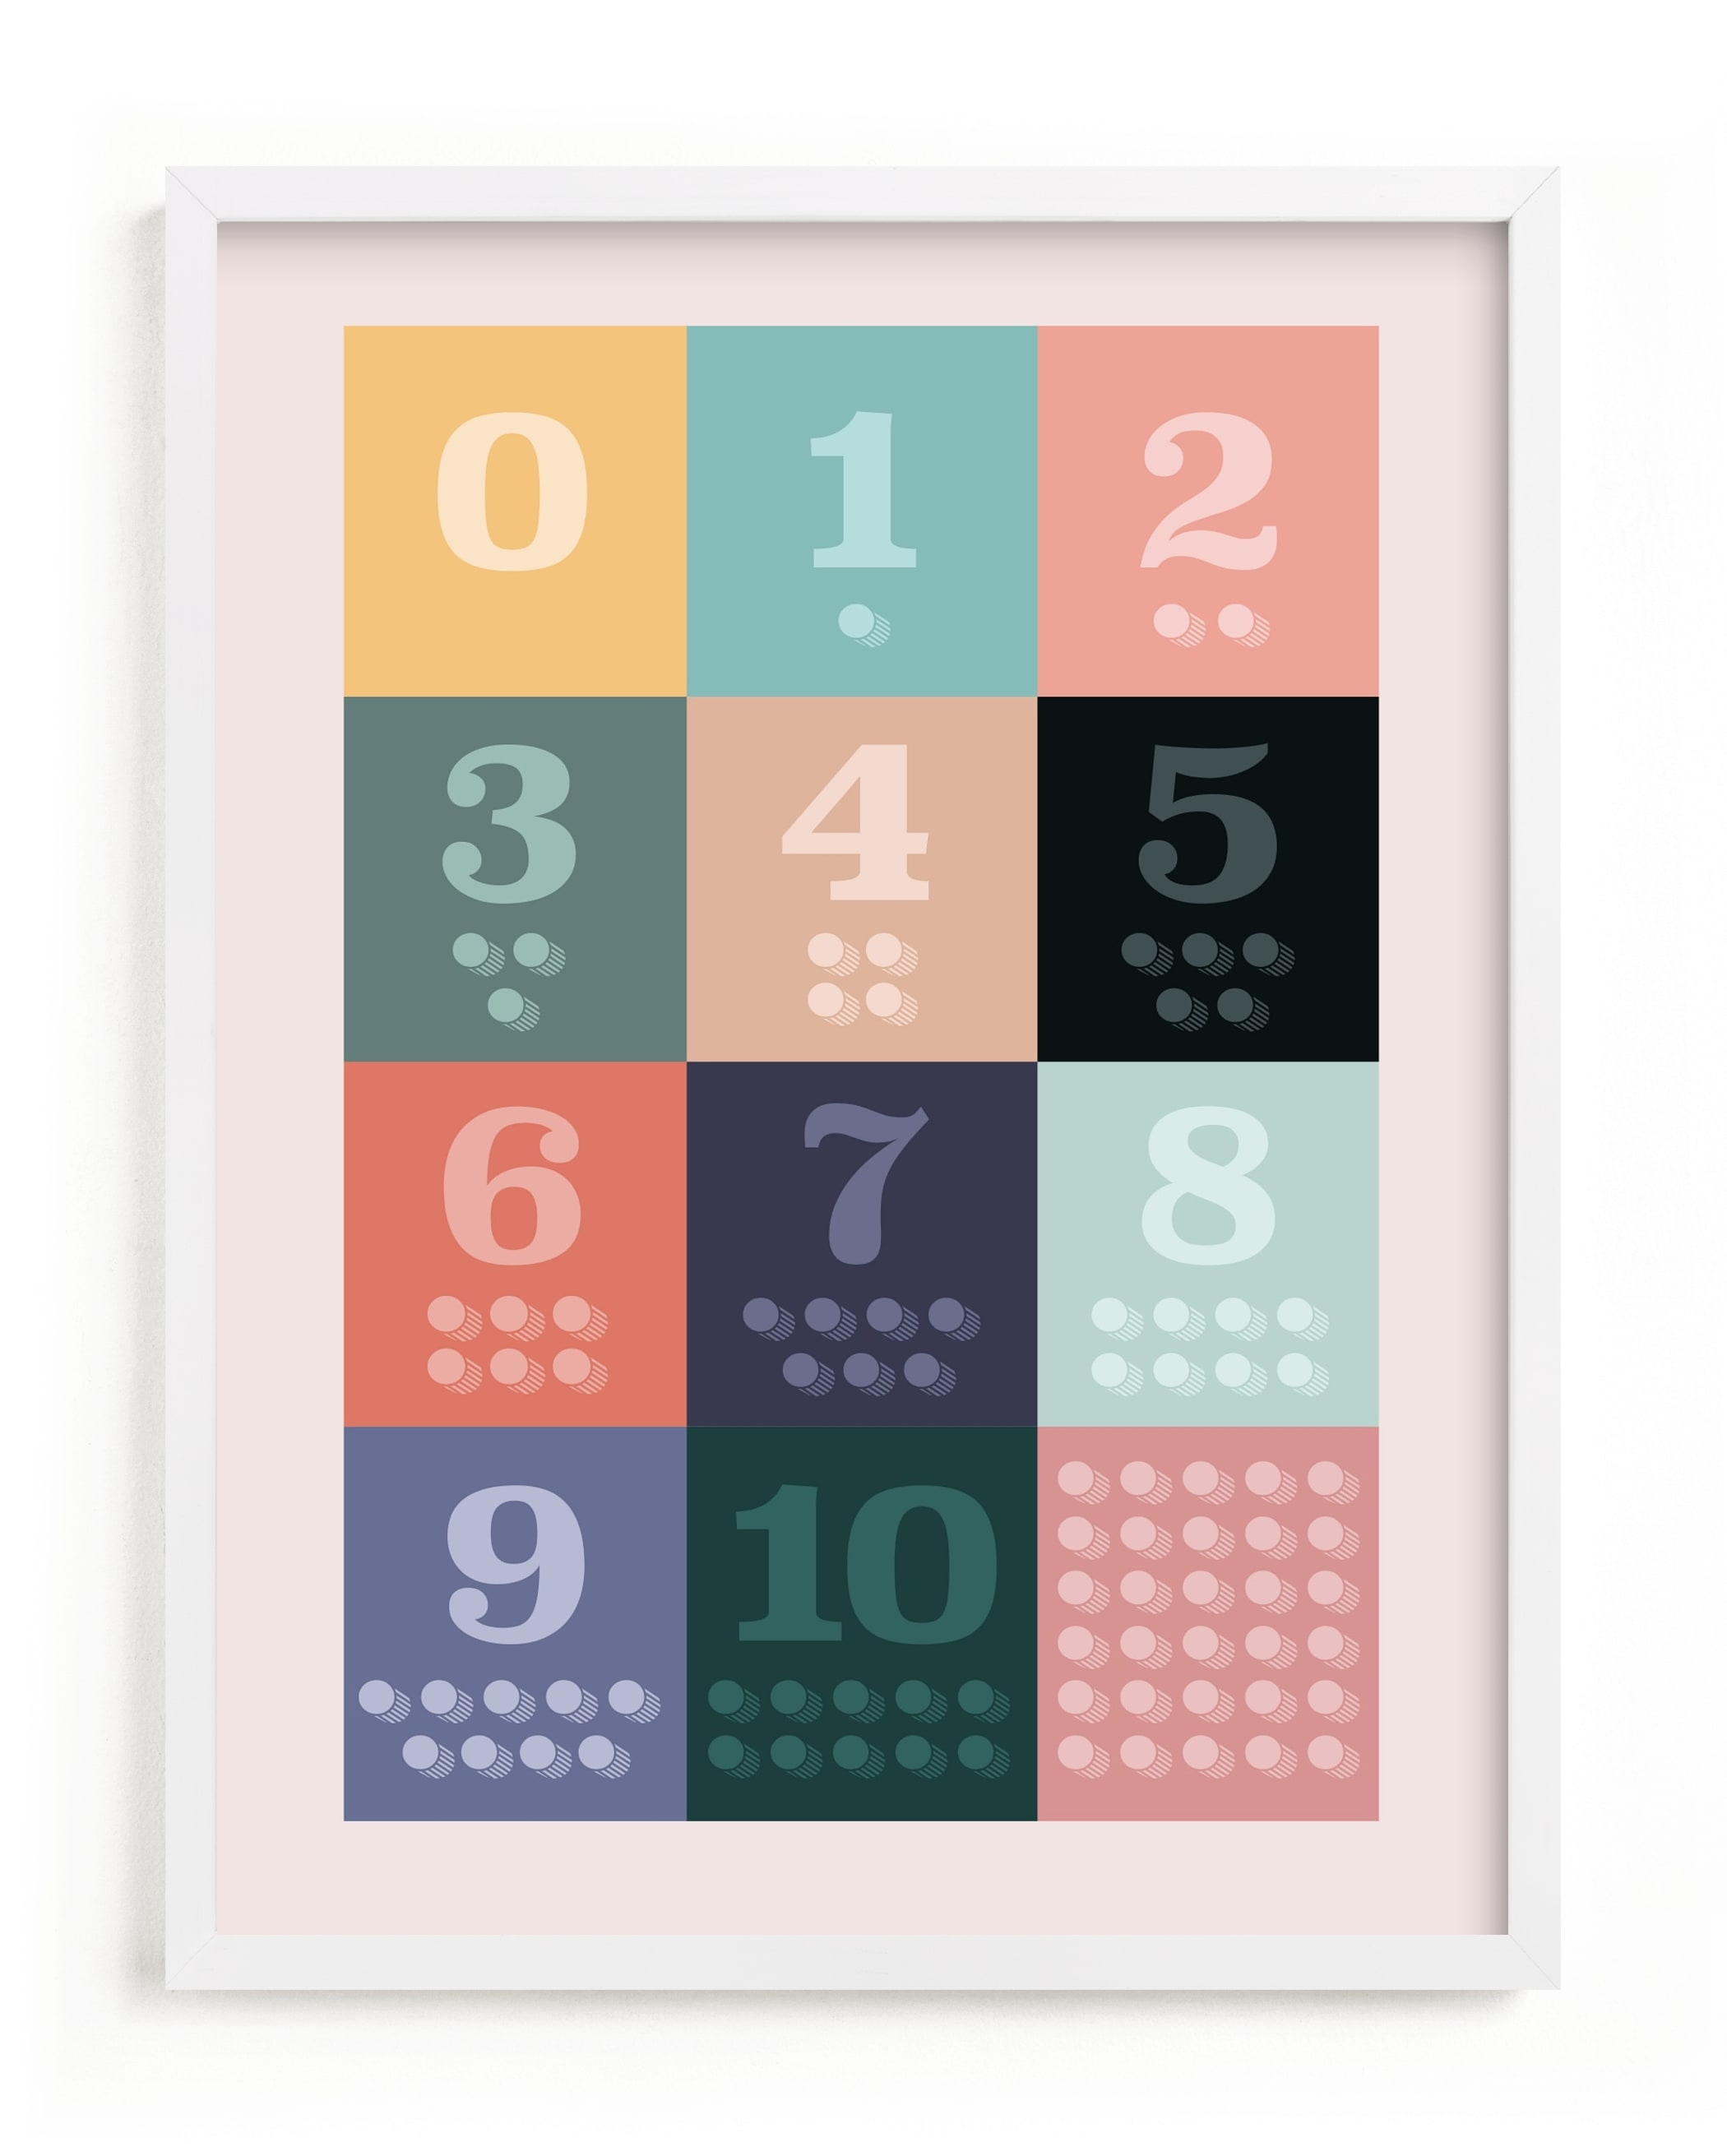 1, 2 , 3, Oh I See! Count Along Numbers Children's Art Print